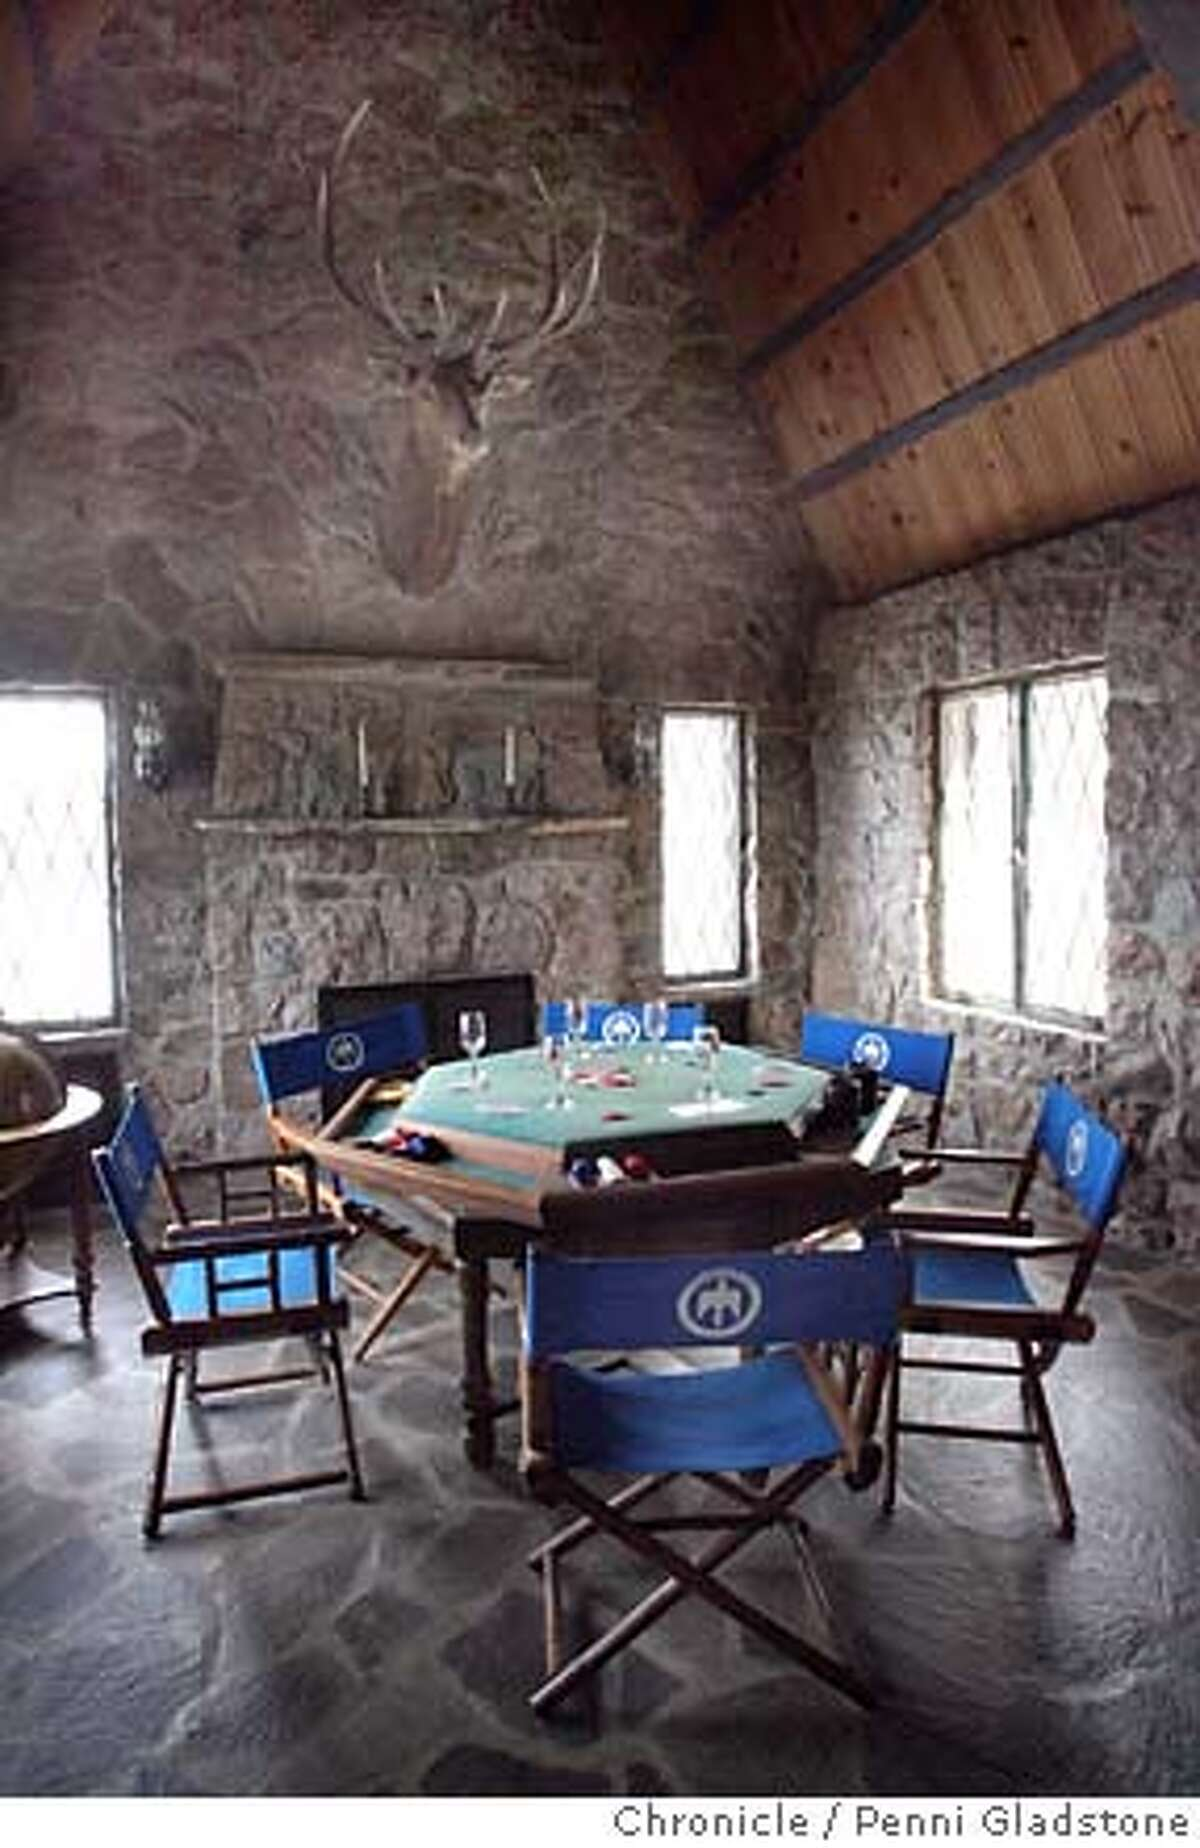 THUNDERBIRDLODGE033_PG.JPG this is the poker room Perched on a cliff, the Thunderbird Lodge commands a spectacular view of Lake Tahoe. Event on 3/30/07 in Lake Tahoe. penni gladstone / The Chronicle MANDATORY CREDIT FOR PHOTOG AND SF CHRONICLE/NO SALES-MAGS OUT